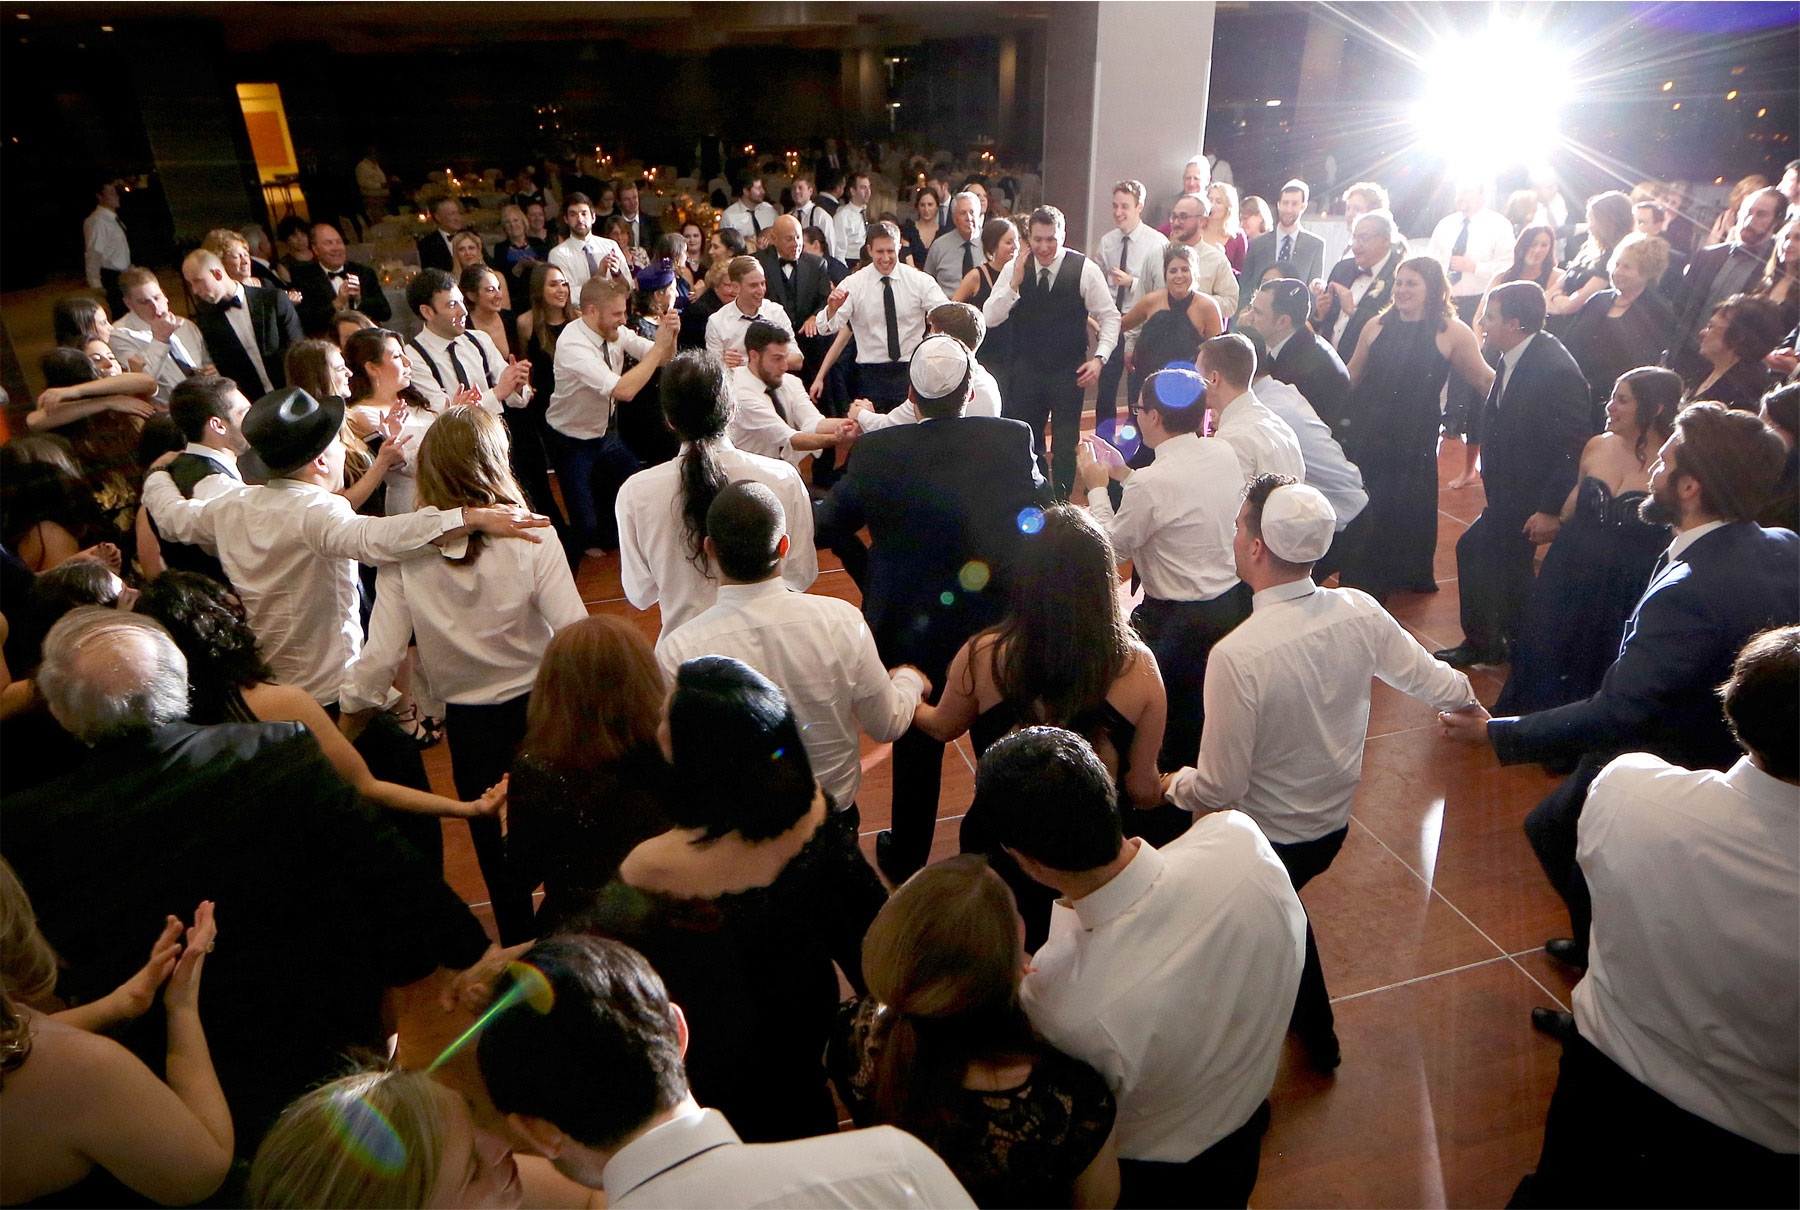 19-Minneapolis-Minnesota-Wedding-Photographer-by-Andrew-Vick-Photography-Winter-Hyatt-Regency-Hotel-Reception-Groom-Father-Parents-Guests-Horah-Dance-Yarmulke-Amy-and-Jordan.jpg